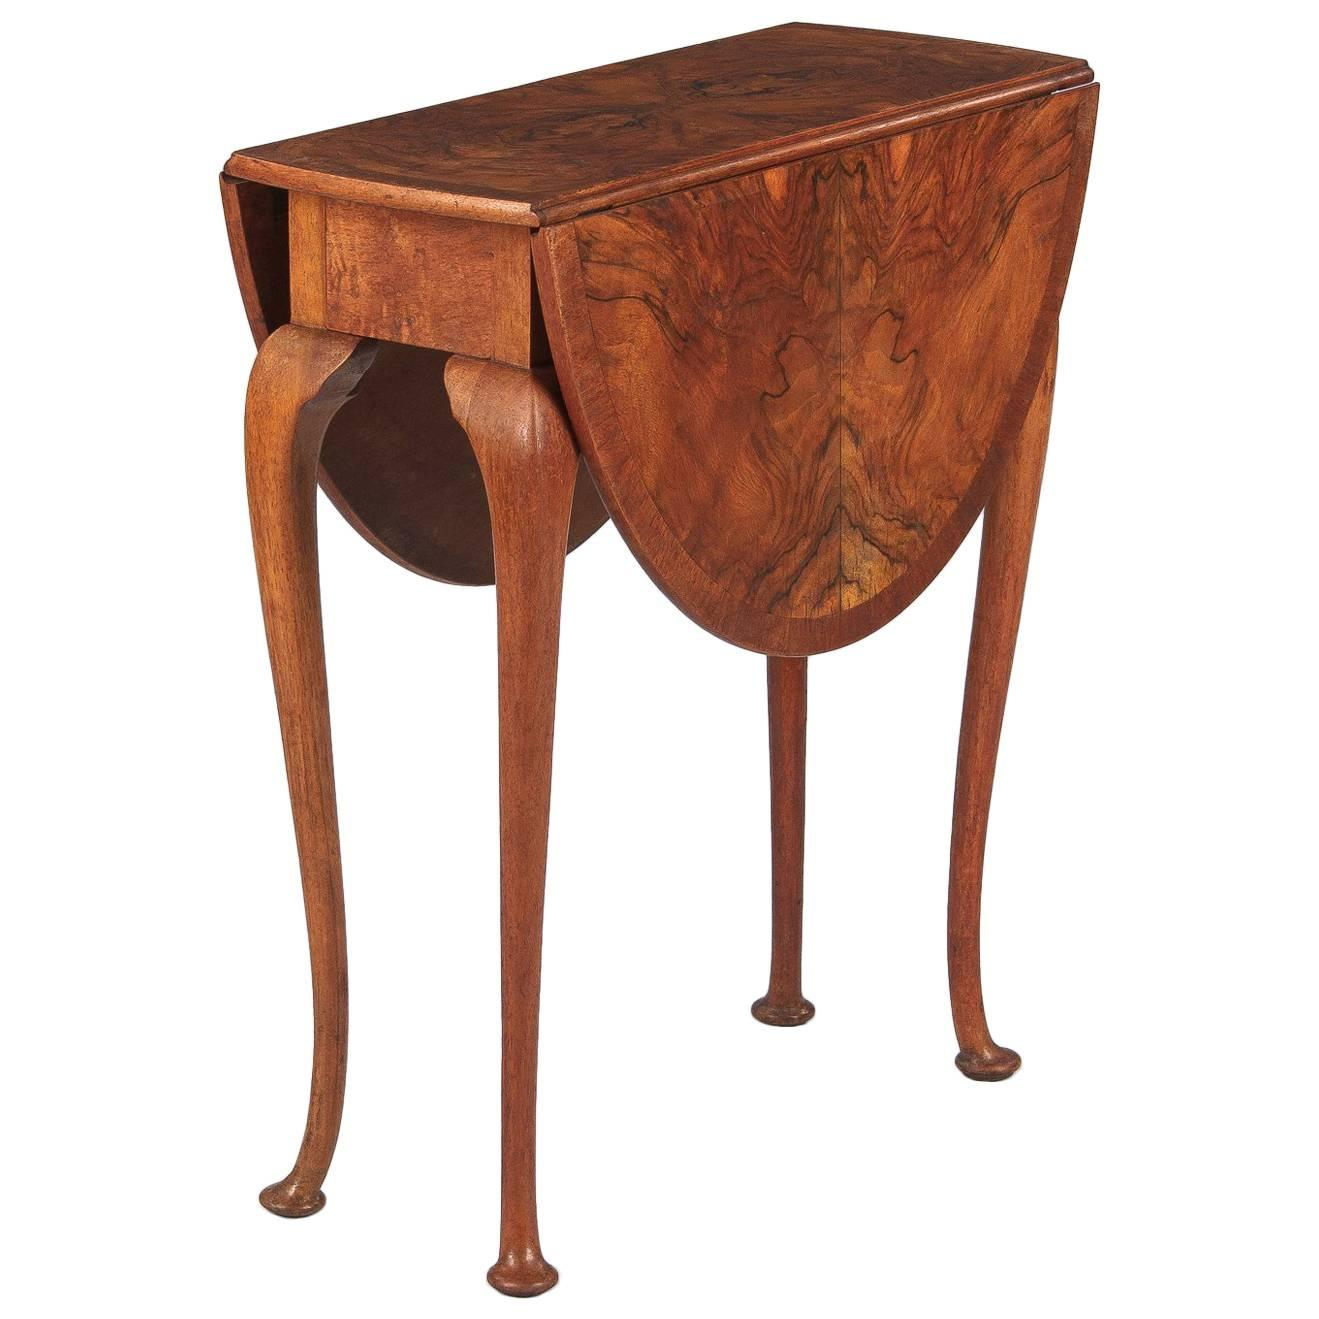 Queen Anne Style Petite Drop Leaf Table, England, Late 1800s